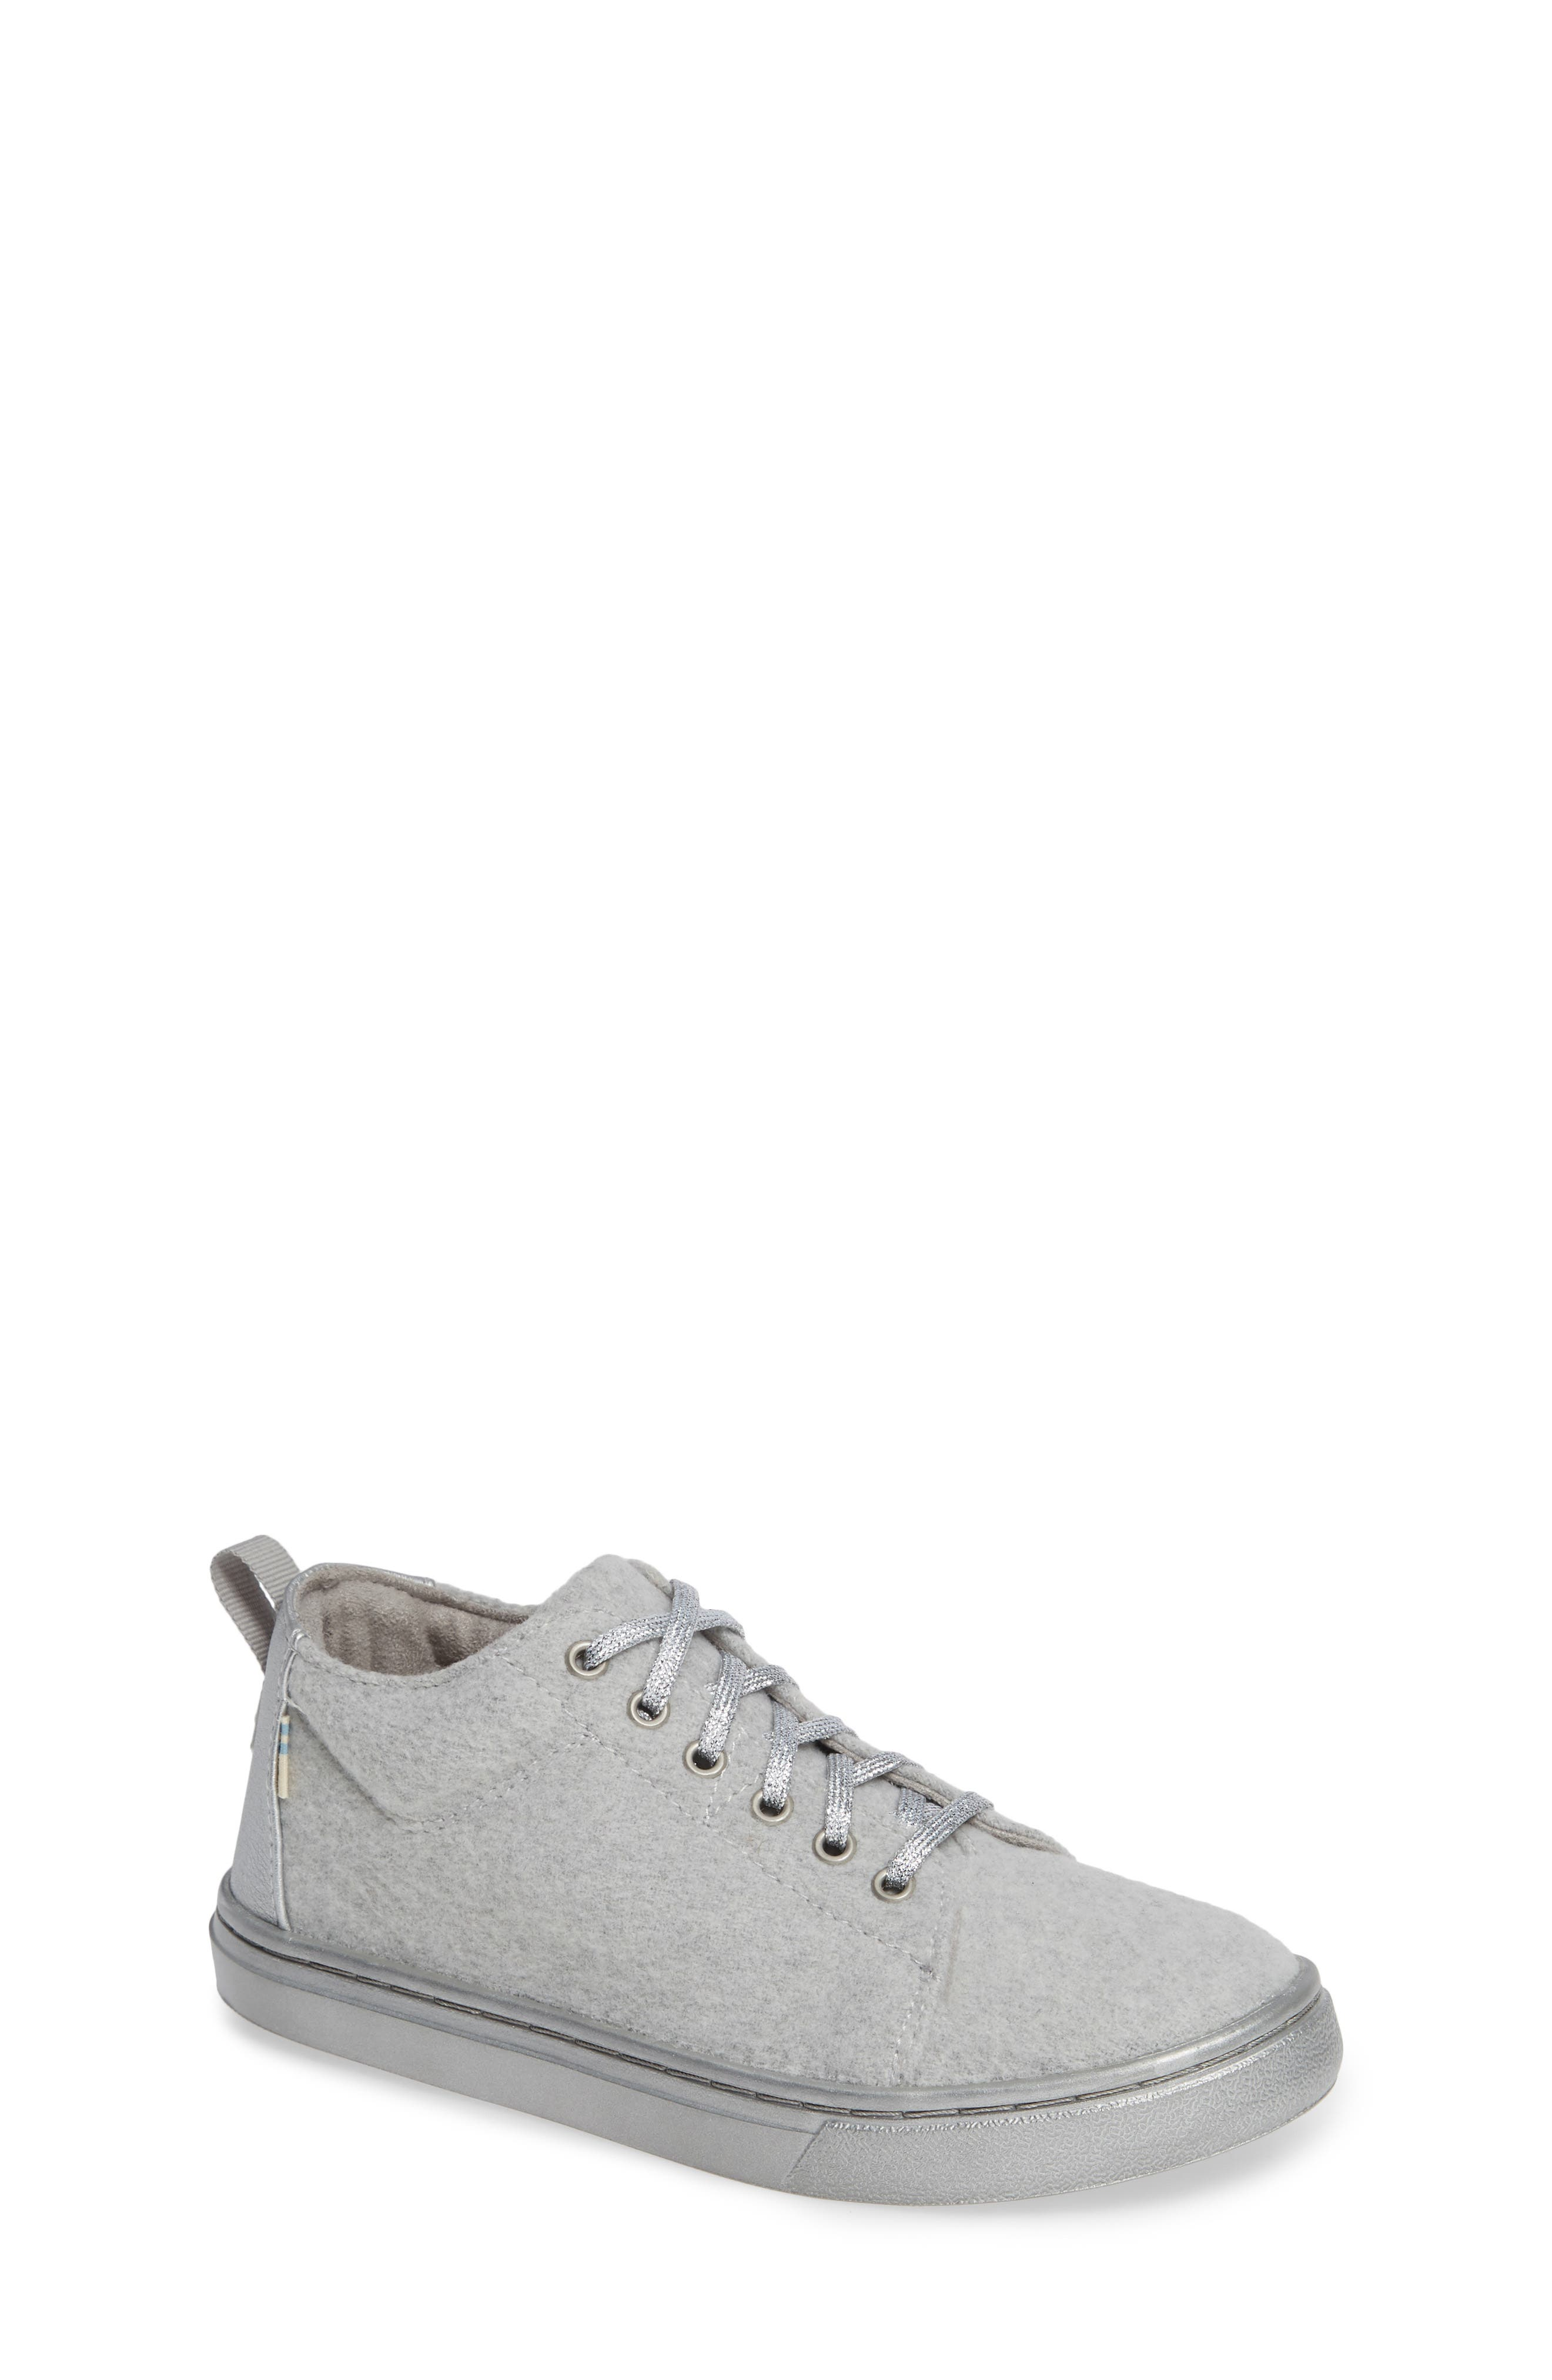 Lenny Mid Top Sneaker,                         Main,                         color, DRIZZLE GREY FELT